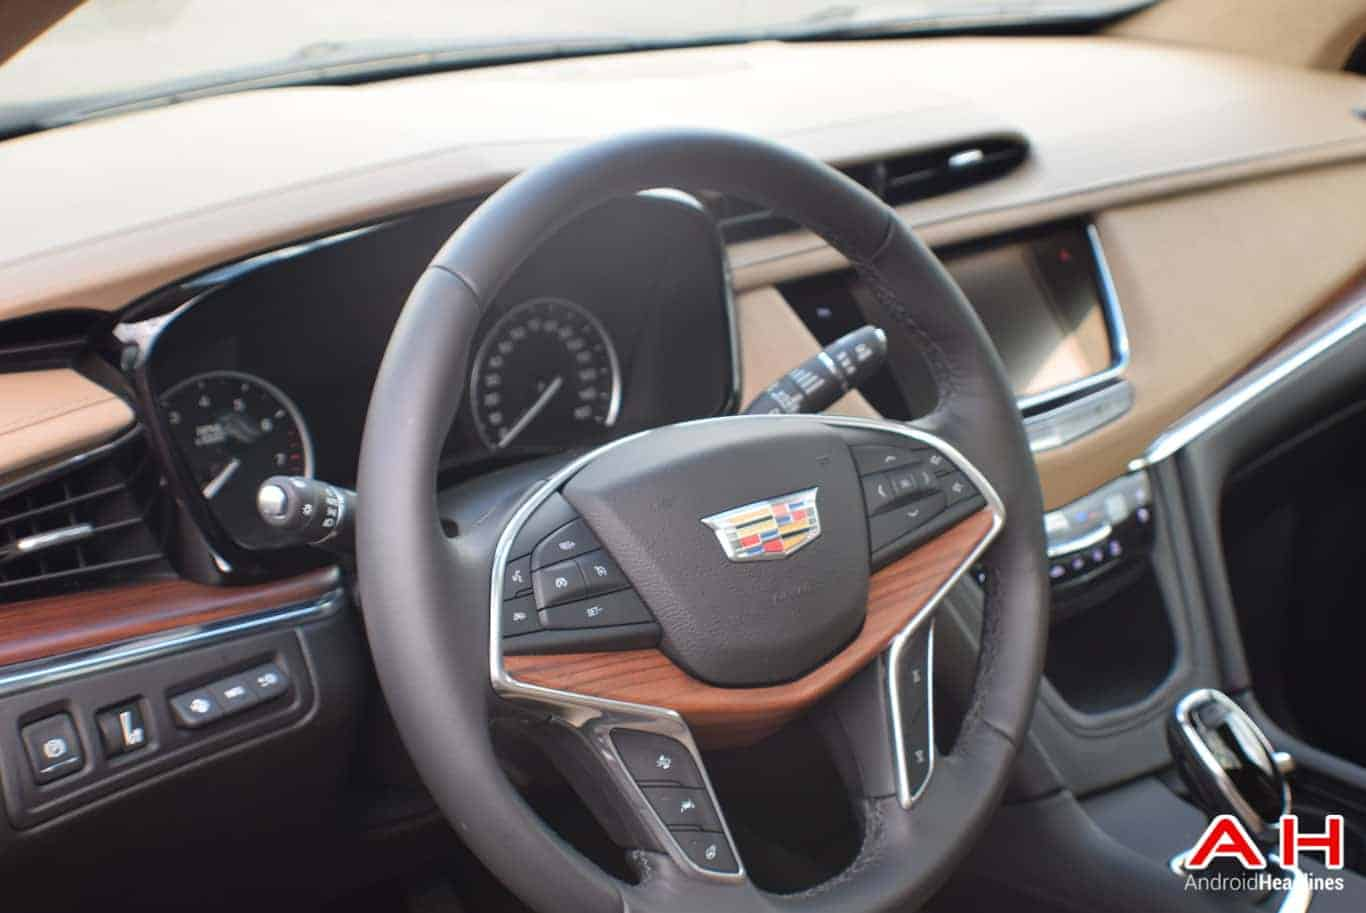 2017 Cadillac XT5 Android Auto Review AM AH 3